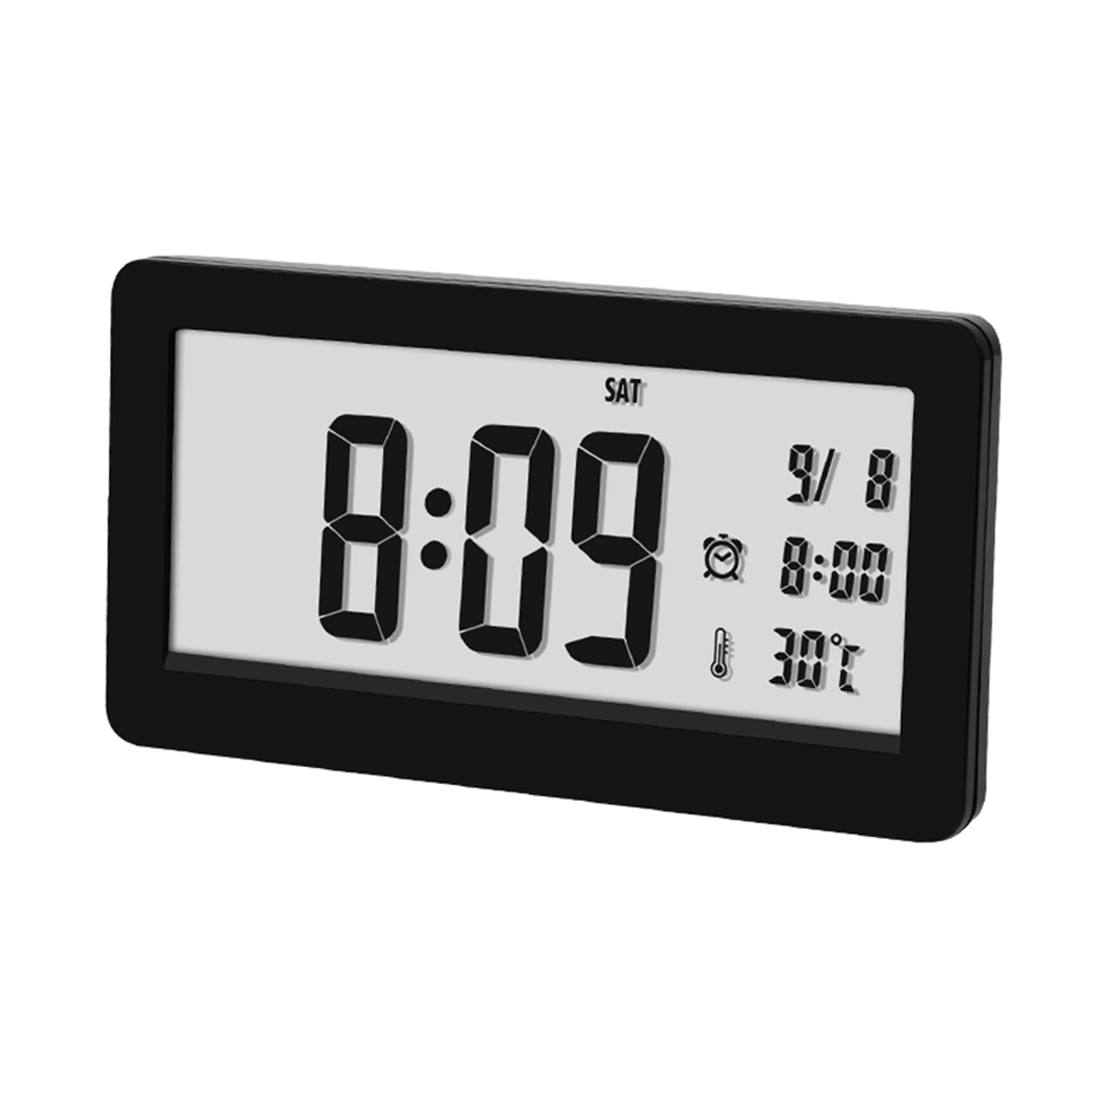 Multifunctional Small Table Clock  Led Digital Electronic Silent Clock For Home Table Decor Desk Clock Stand – Black